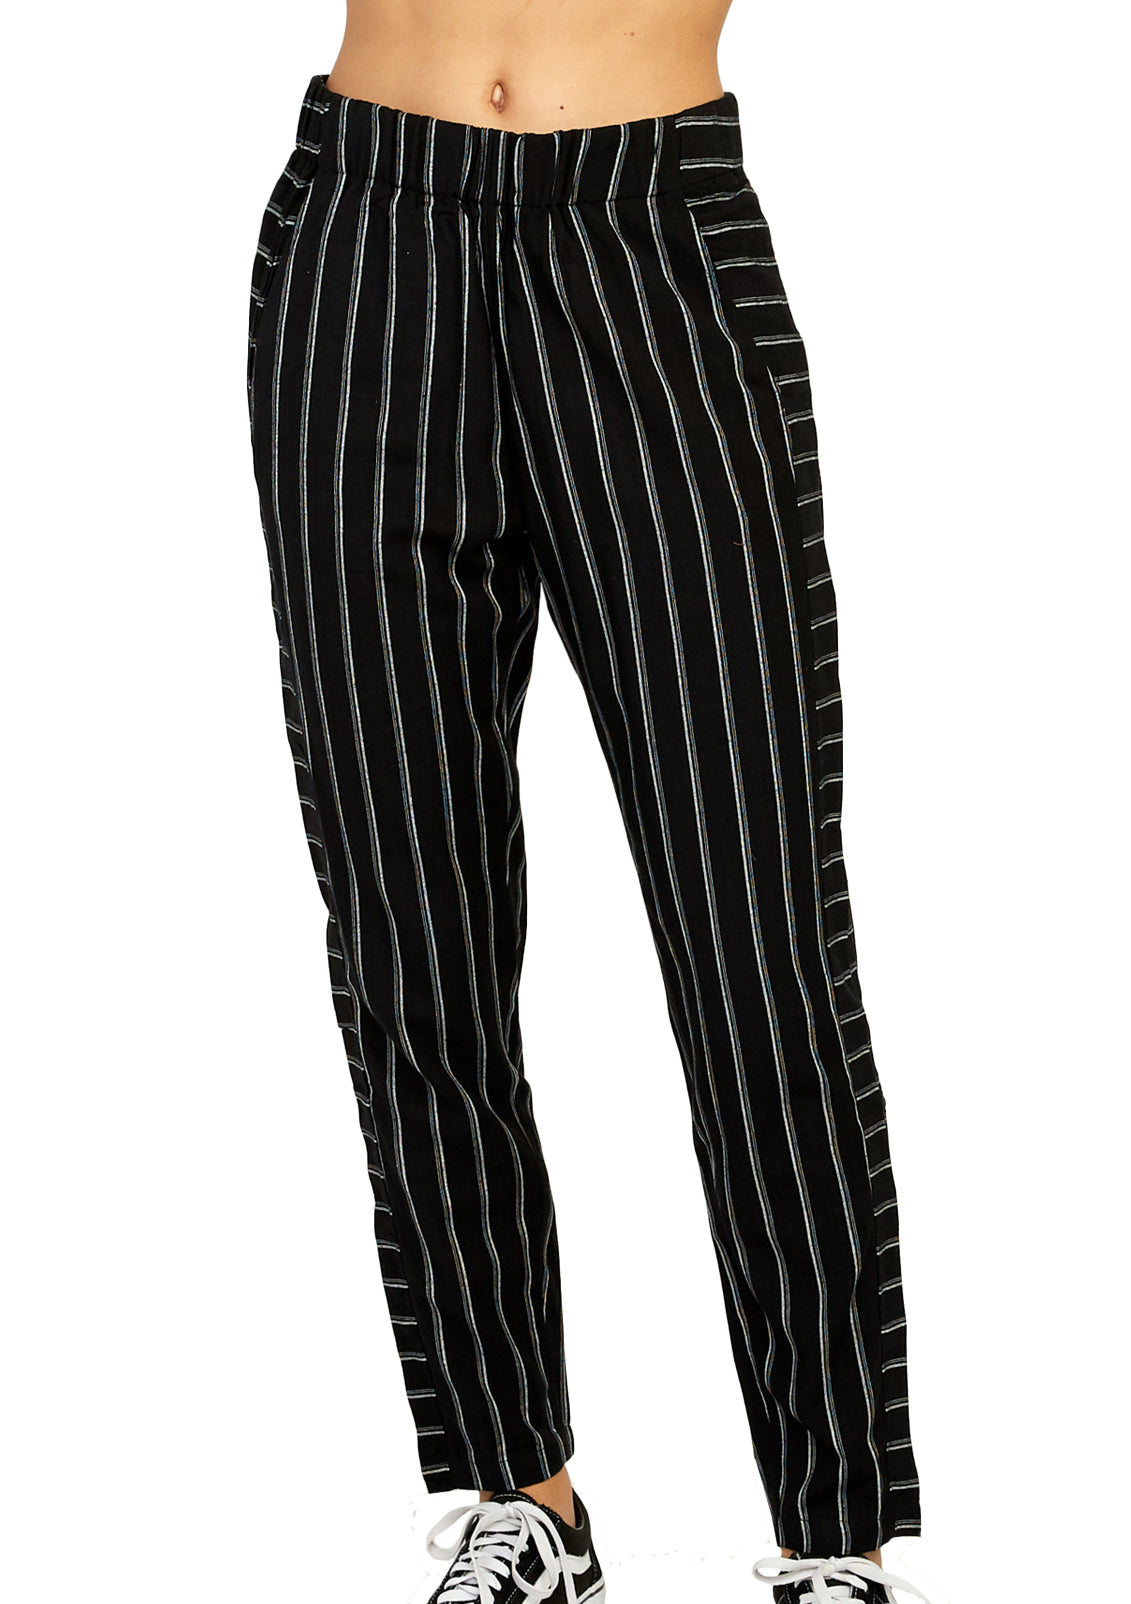 Women's Chill Vibes Elastic Pant